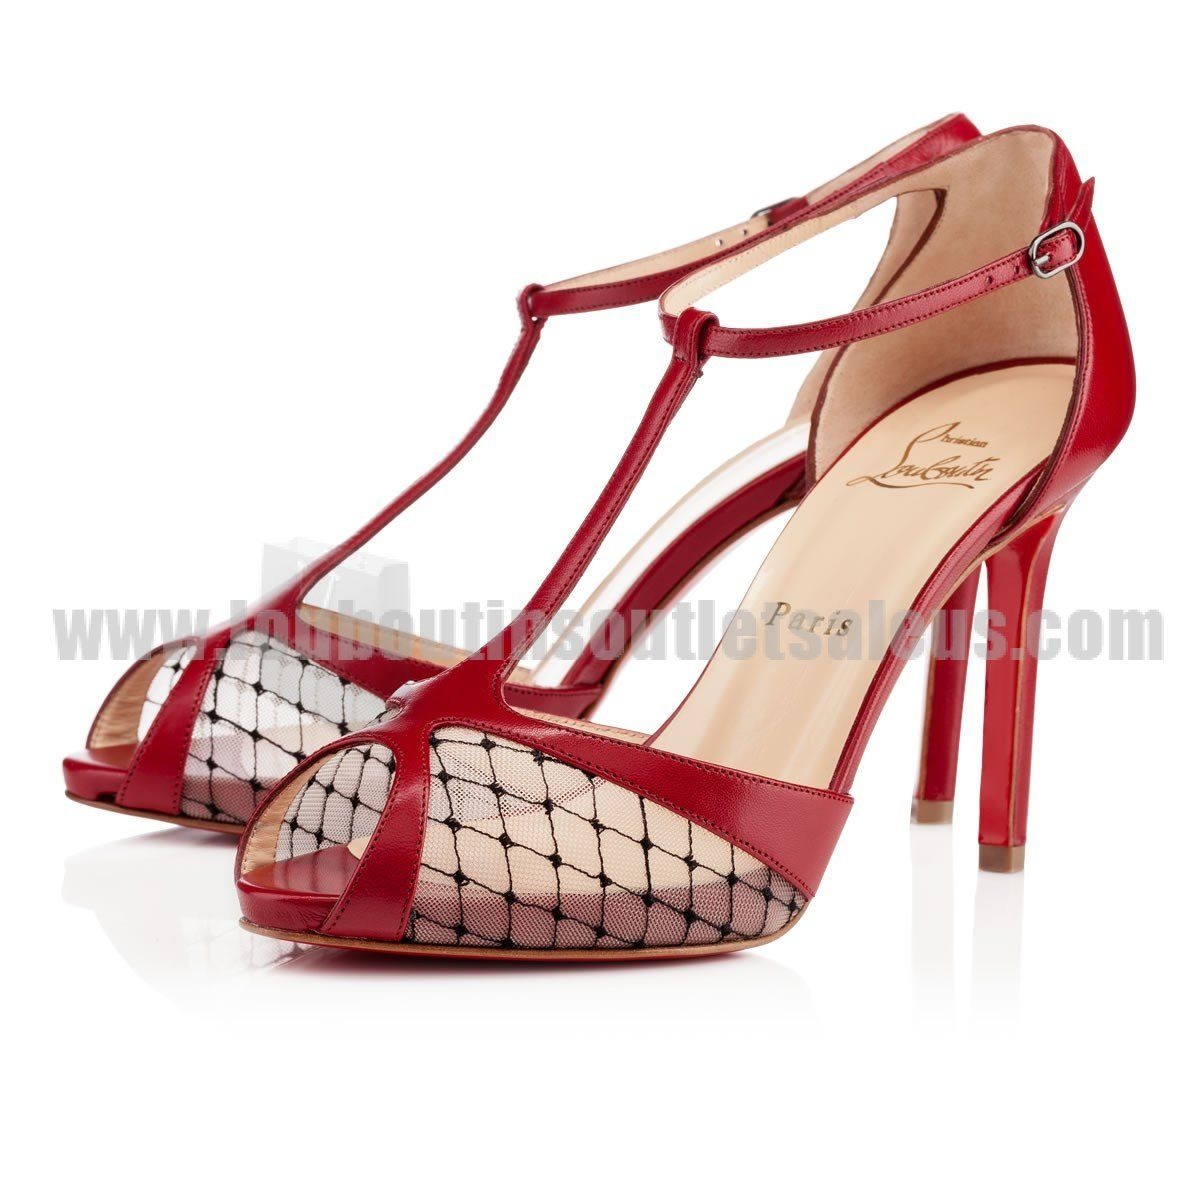 christian louboutin lagoula resille lace 100mm red red bottom rh za pinterest com